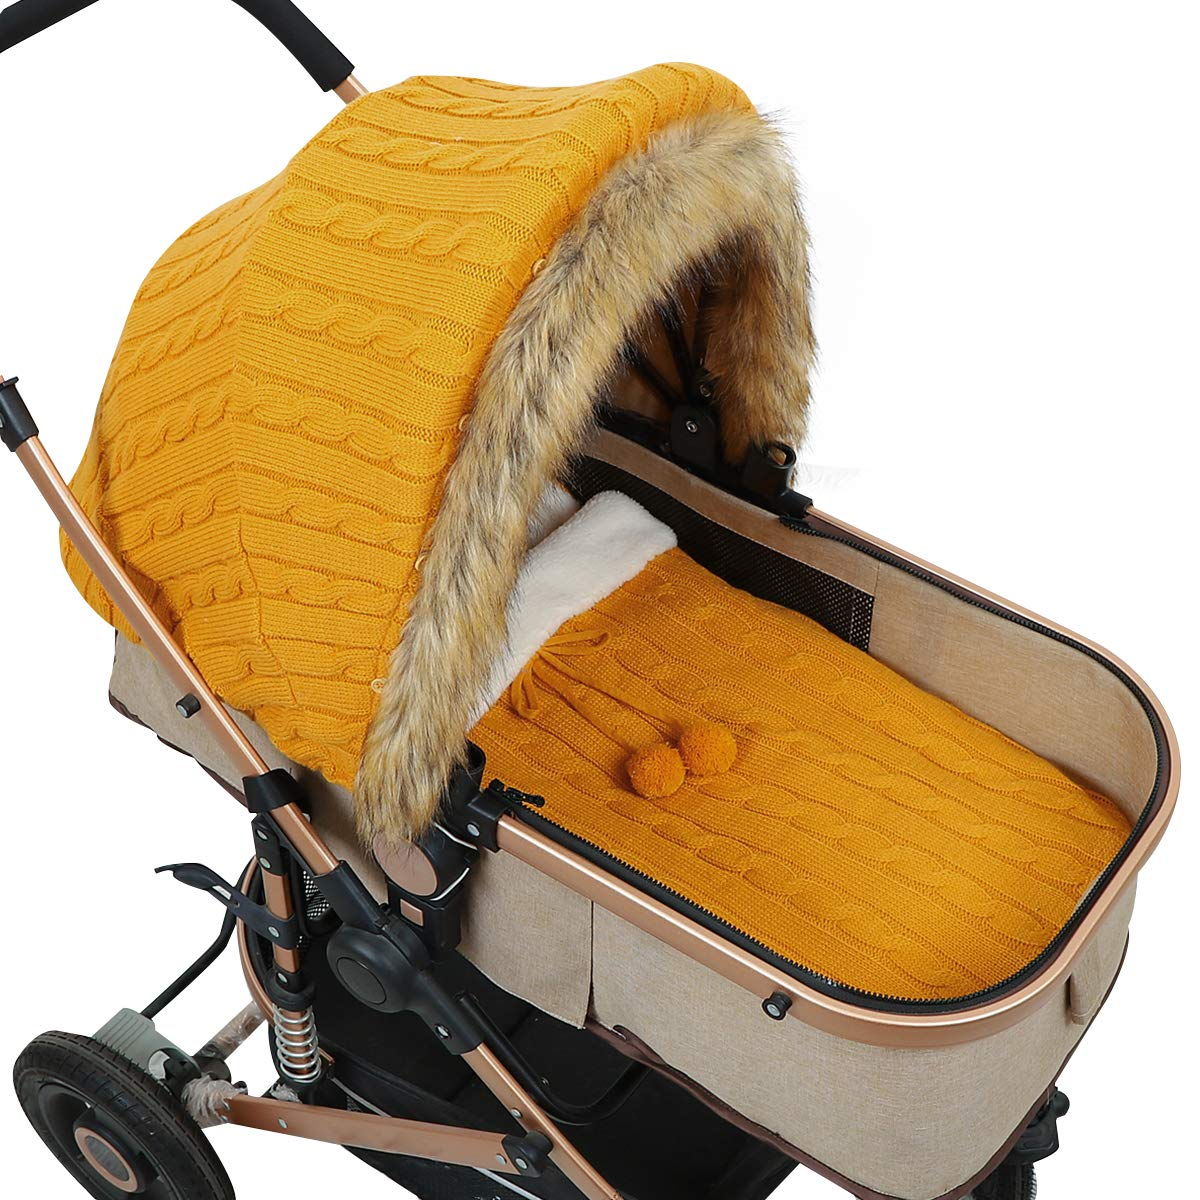 Baby Stroller Cover Sleep Sack Set Newborn Infant Carseat Canopy Stroller Wrap Stretchy Soft Breathable Multi-Use Cover Ups for Stroller High Chair Shopping Cart for Baby Girls Boys(Yellow)